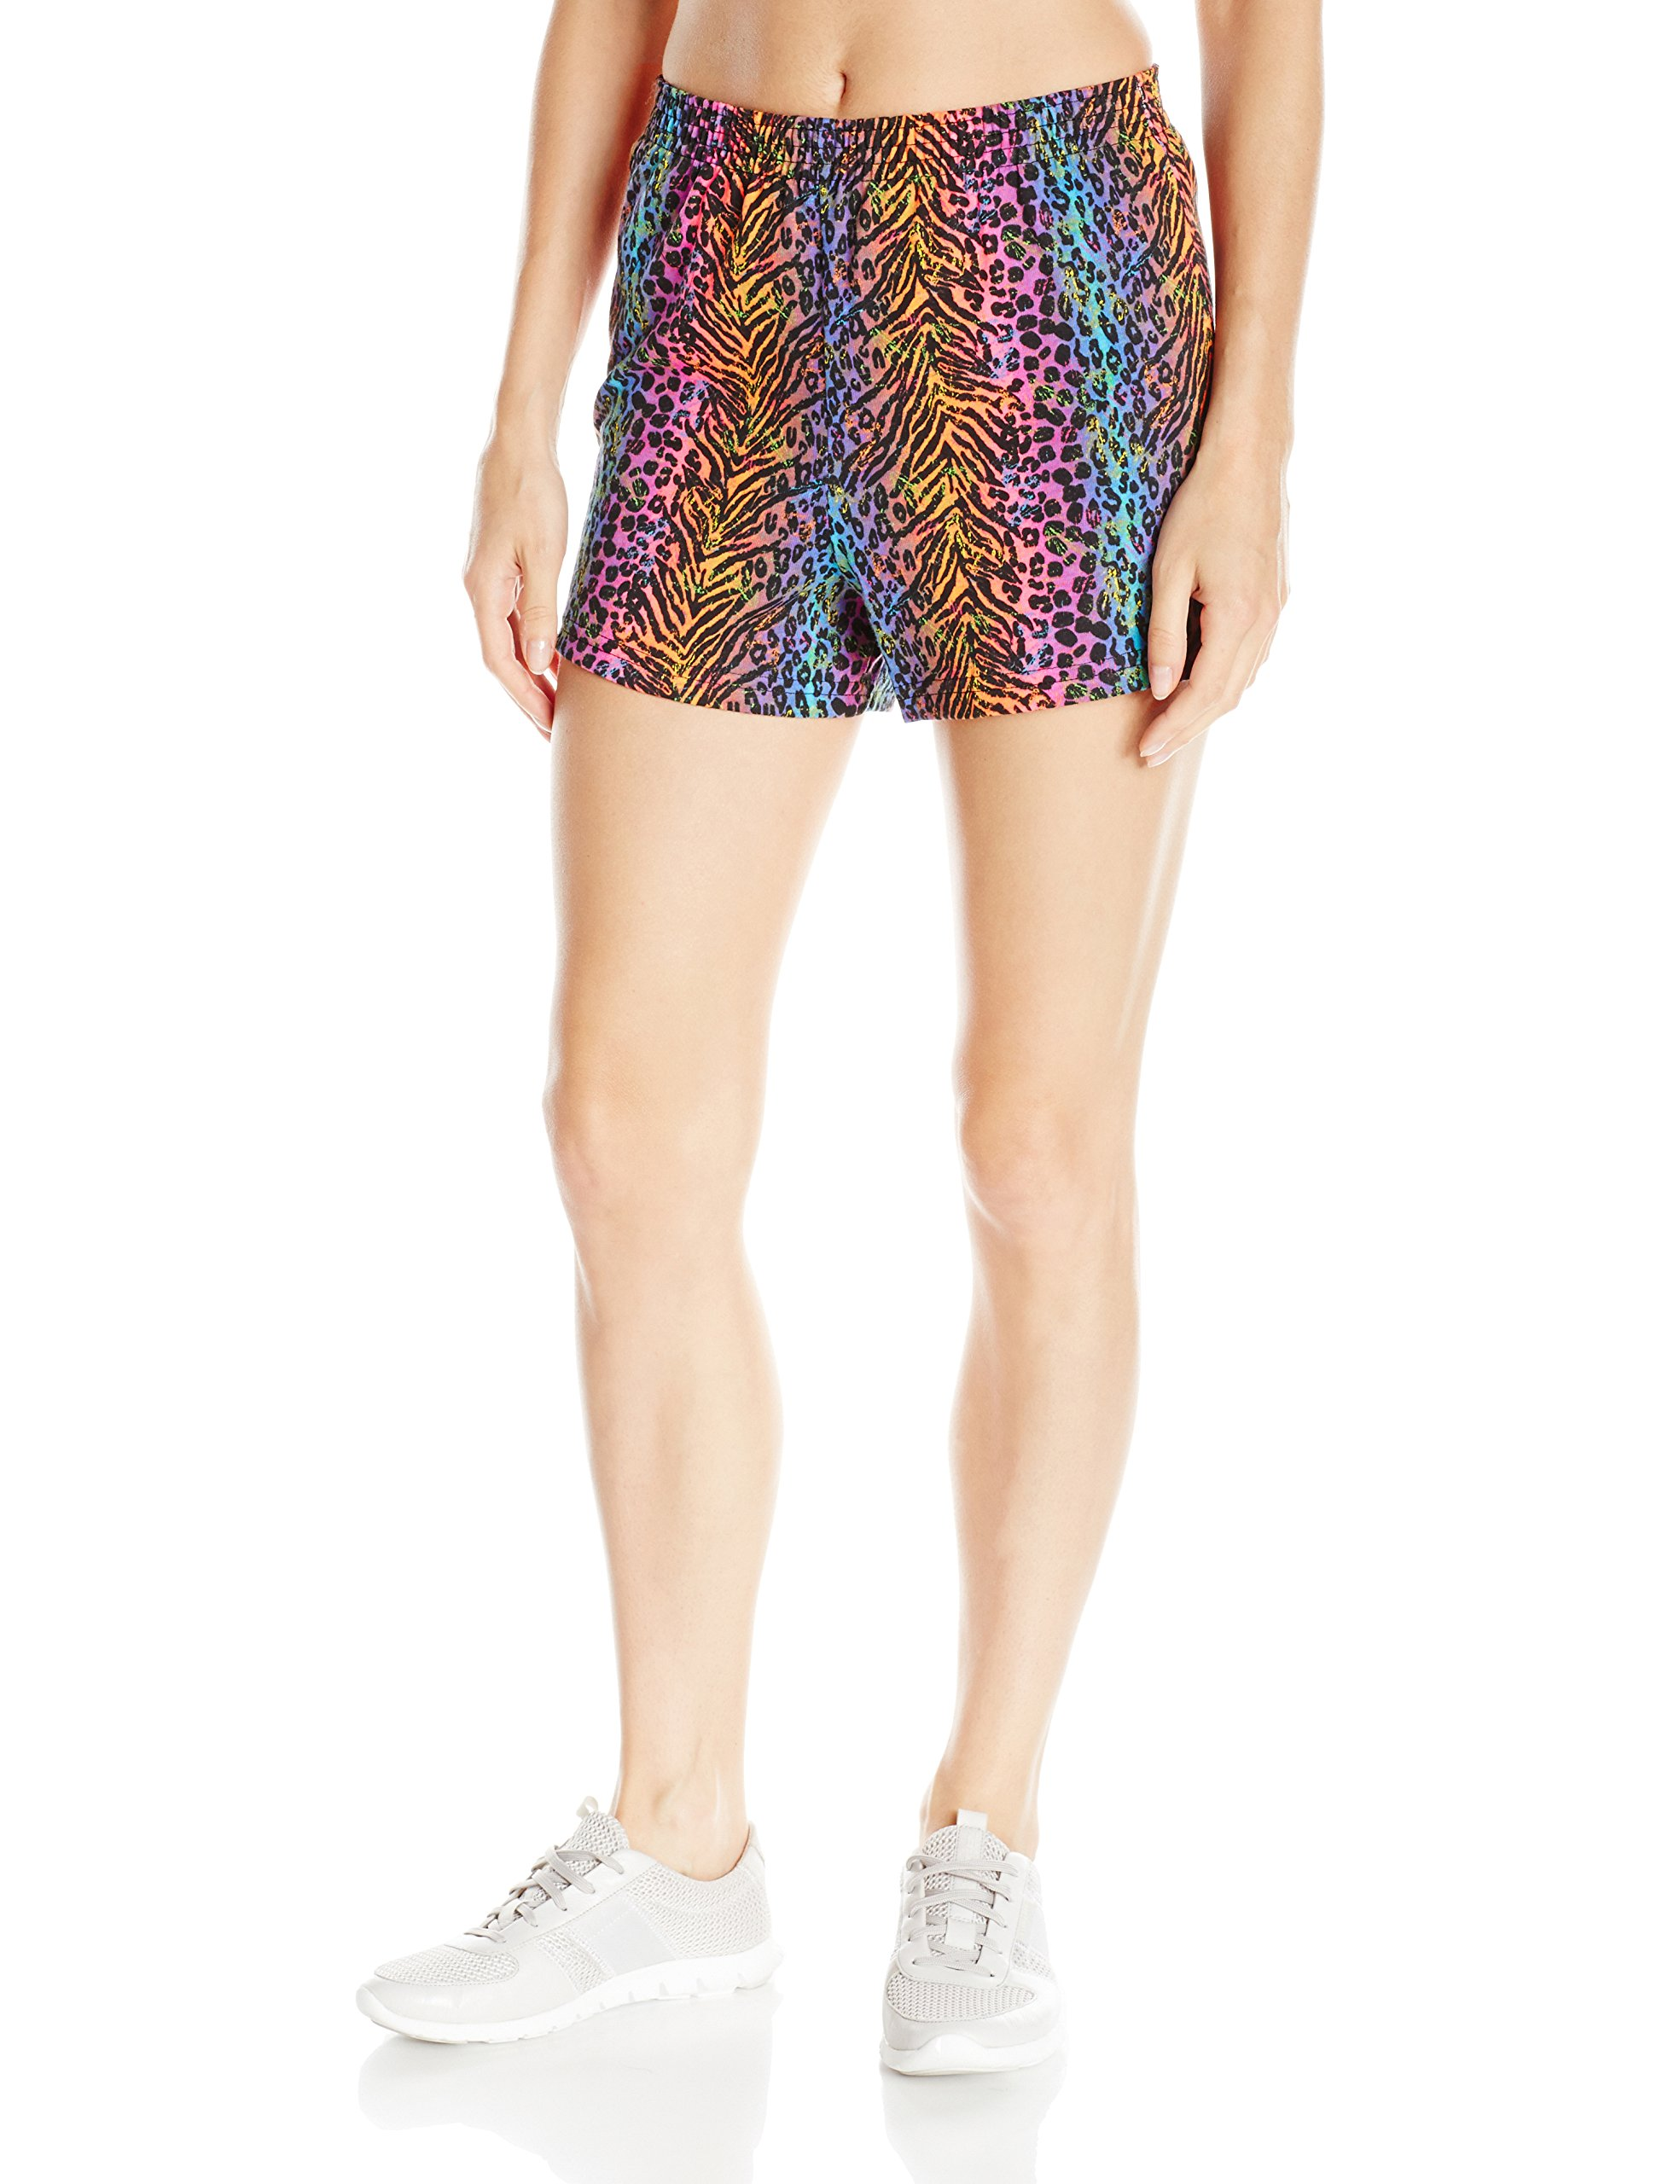 Soffe Women's Jr Printed Short Cctn, Animal Feathers X-Small